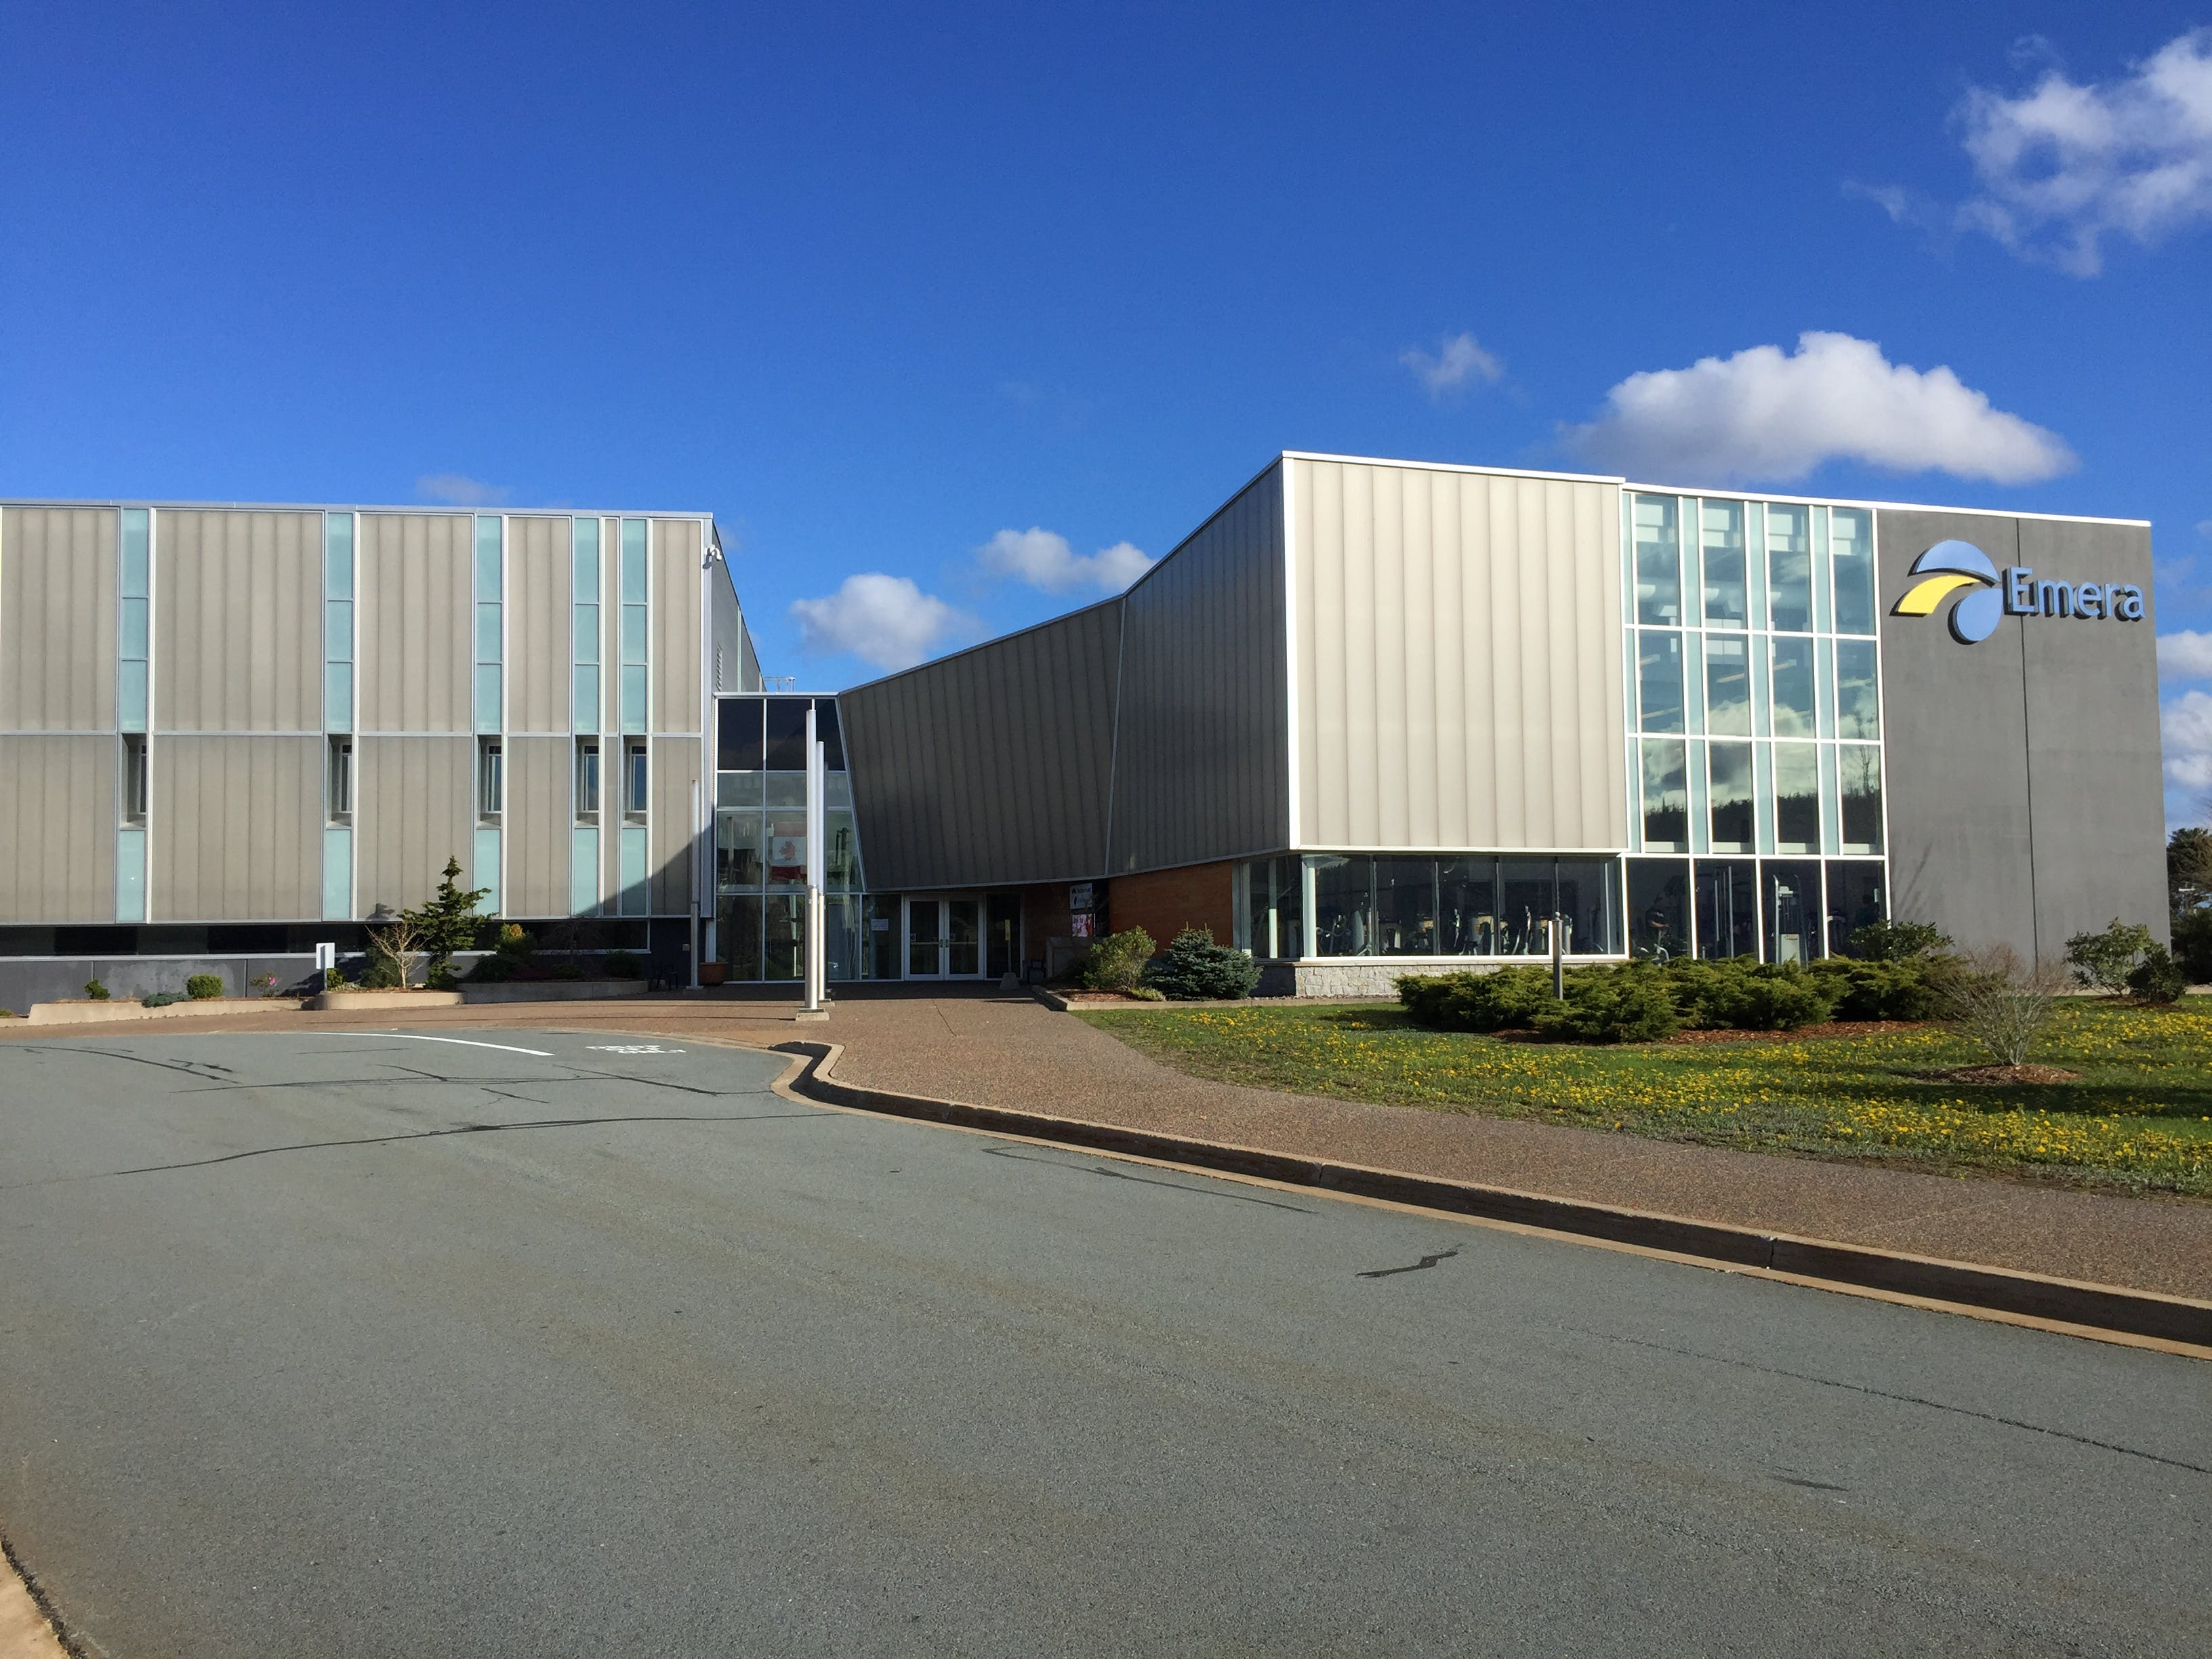 We're Here to Listen Liverpool was held at the Queen's Emera Centre (Liverpool, May 21, 2019)